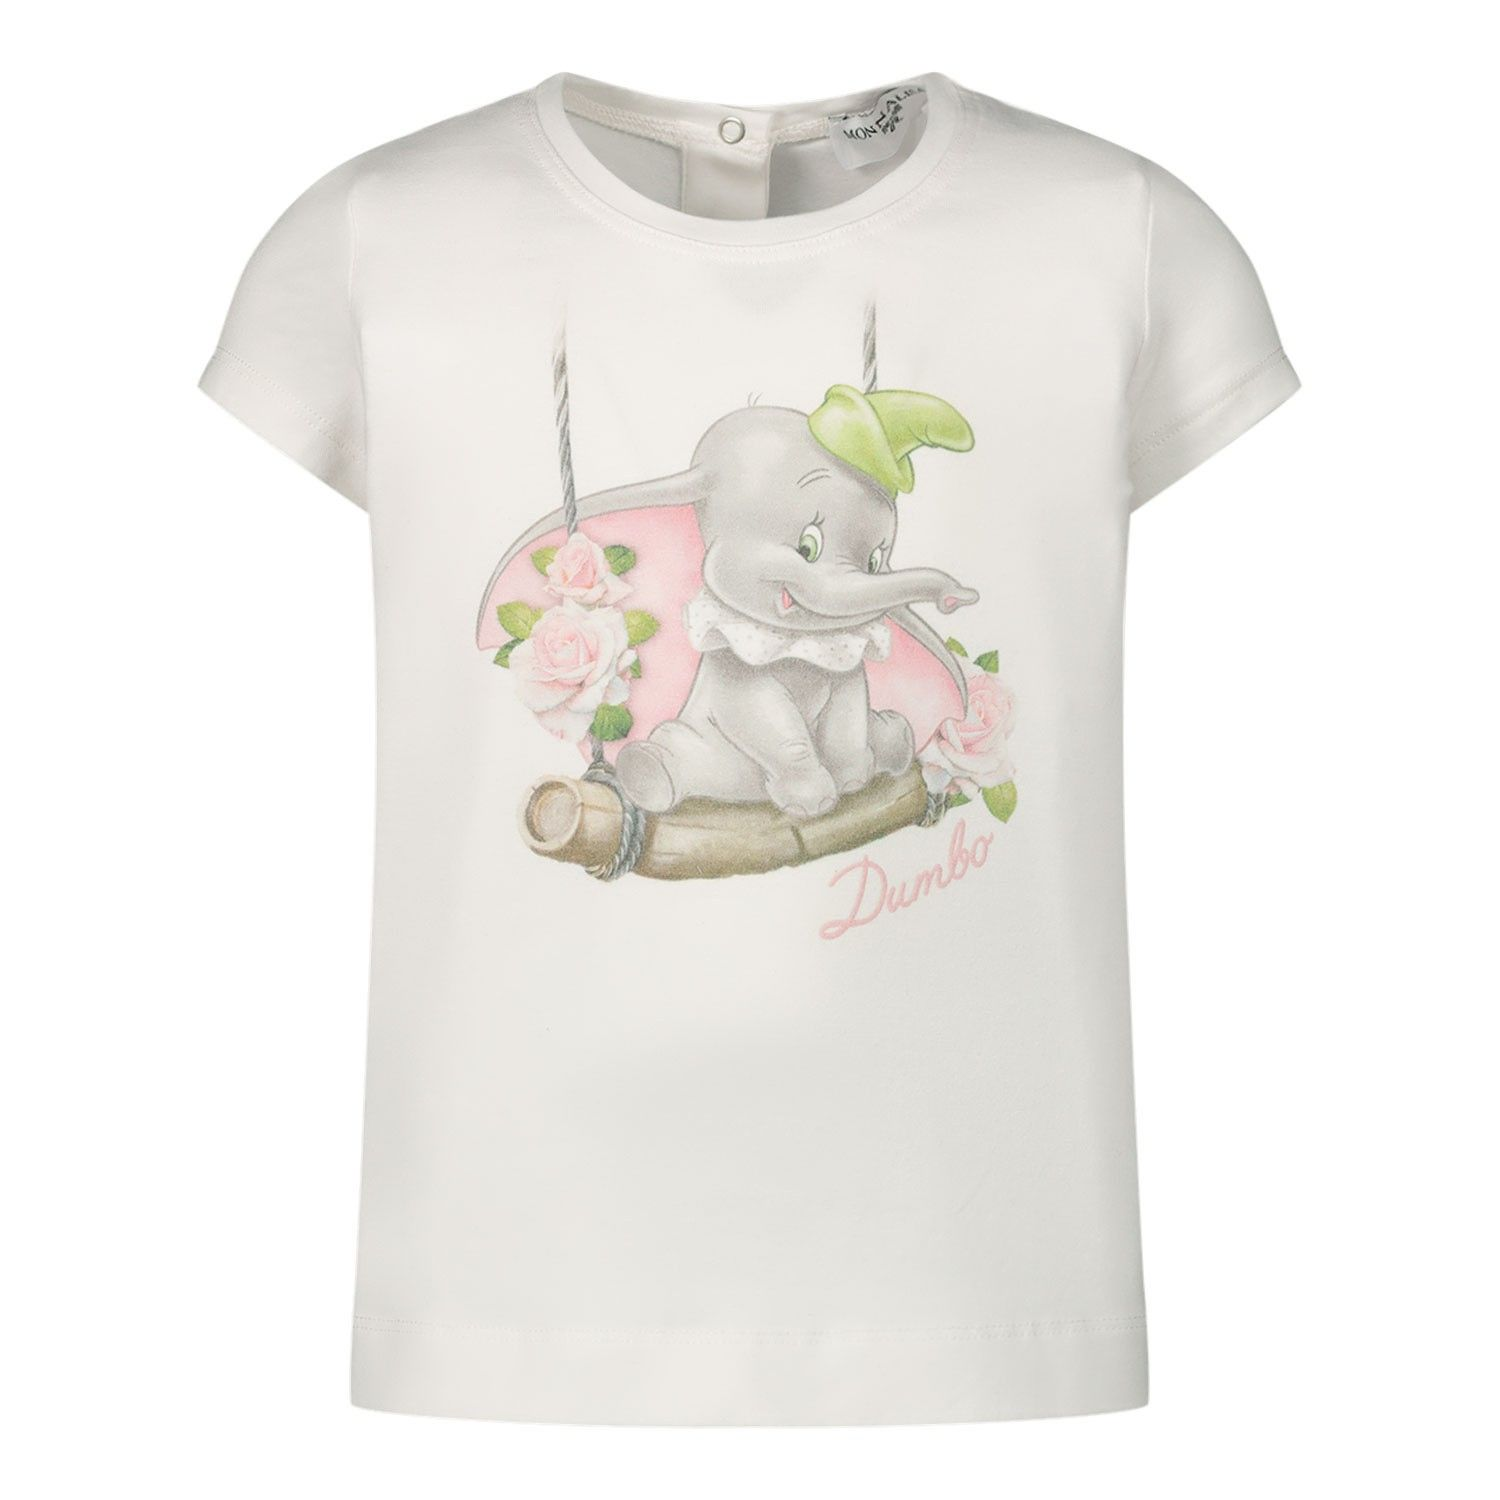 Picture of MonnaLisa 395608SC baby shirt off white